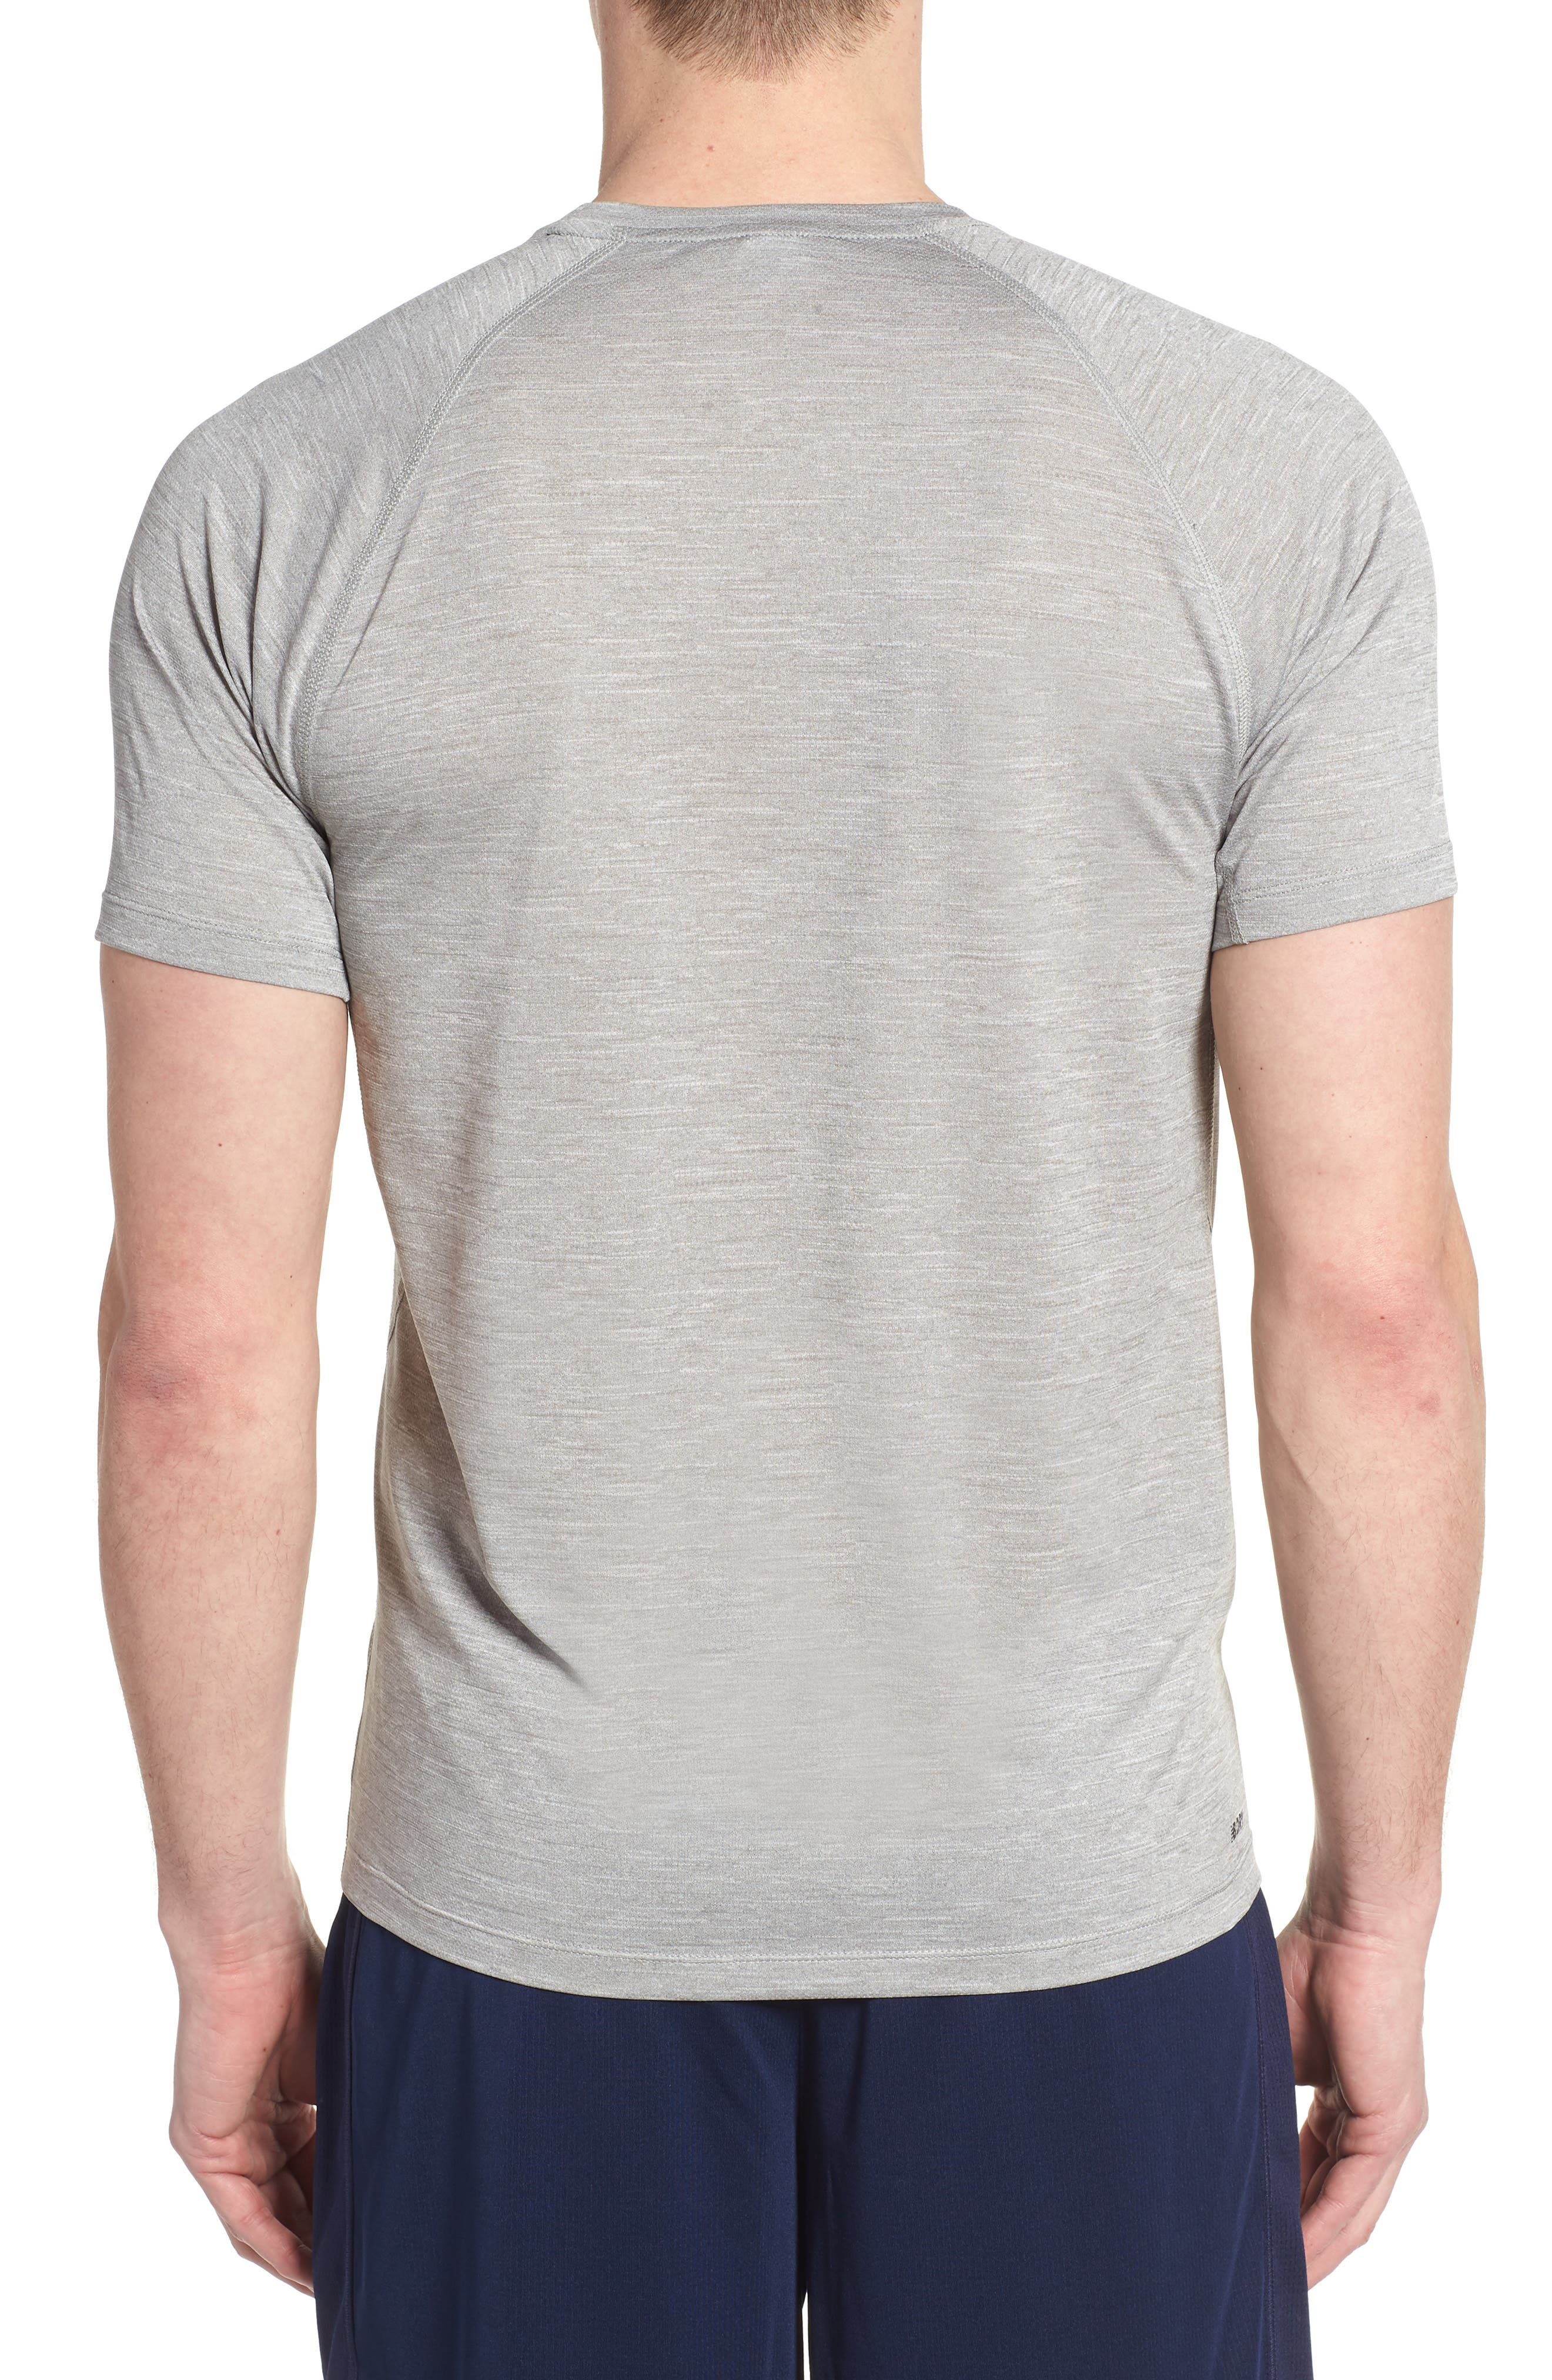 Tenacity Crewneck T-Shirt,                             Alternate thumbnail 2, color,                             ATHLETIC GREY